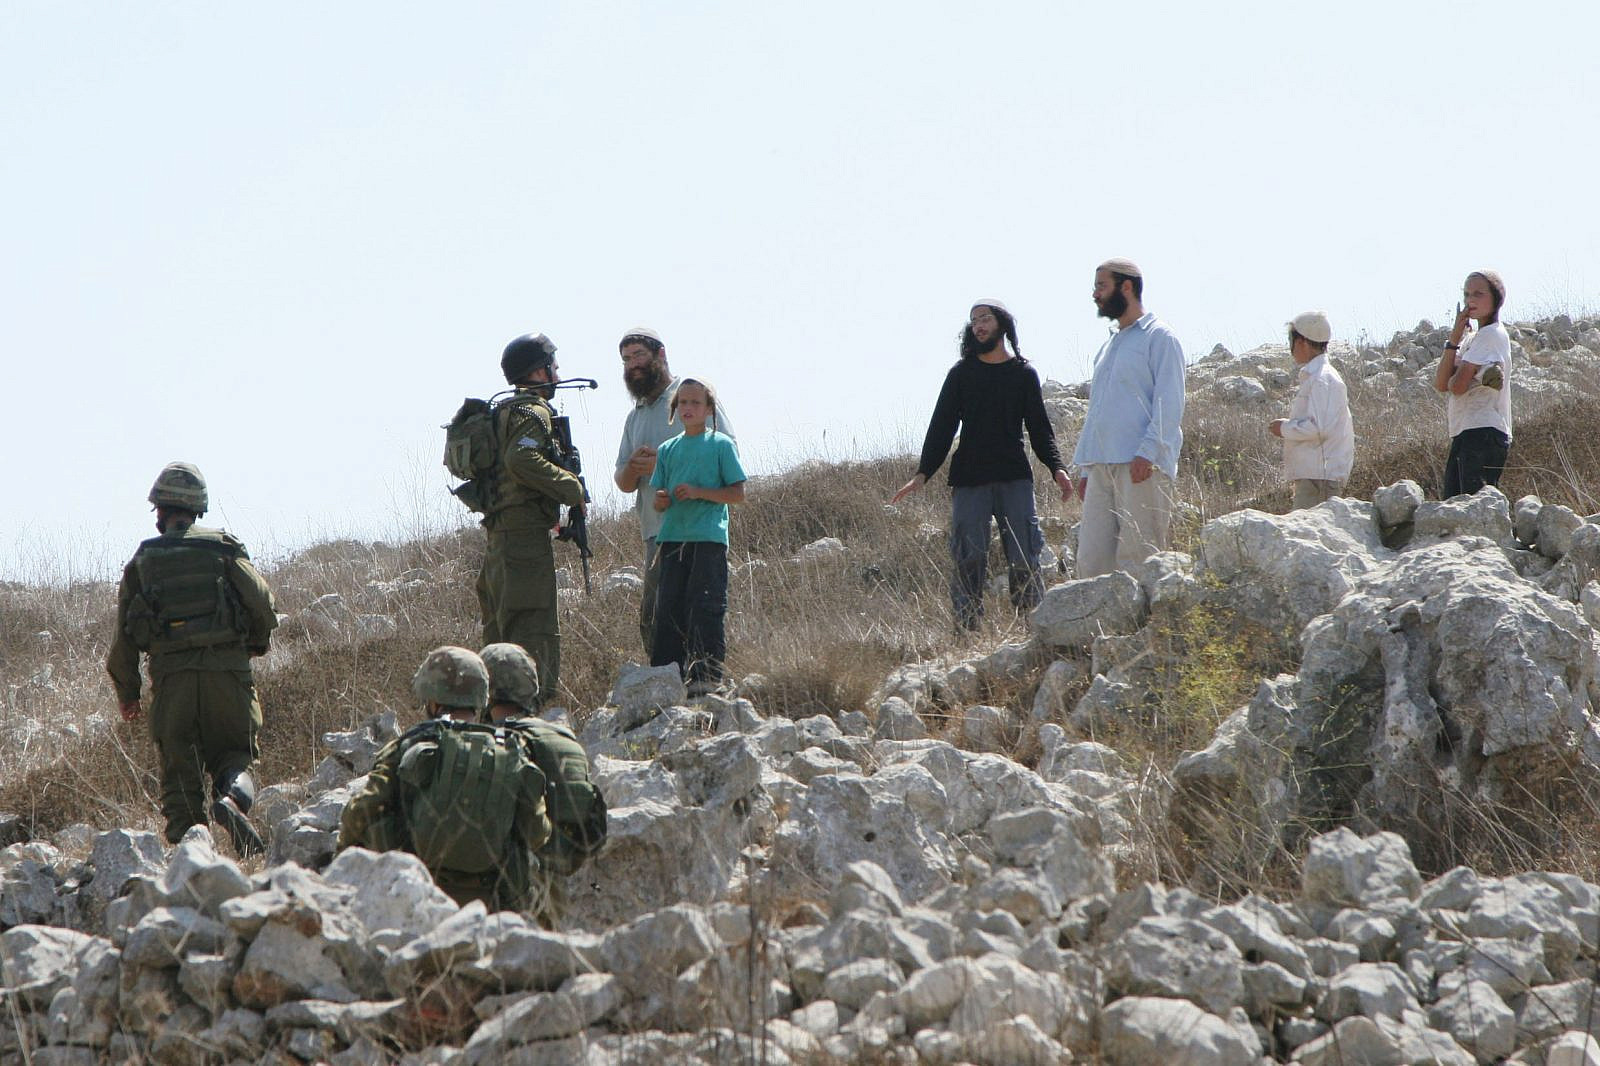 Jewish settlers argue with Israeli soldiers during a confrontation between the settlers and Palestinians over farming land between the Jewish settlement of Bracha and the West Bank village of Burin on September 21, 2010. (Wagdi Ashtiyeh/Flash90)